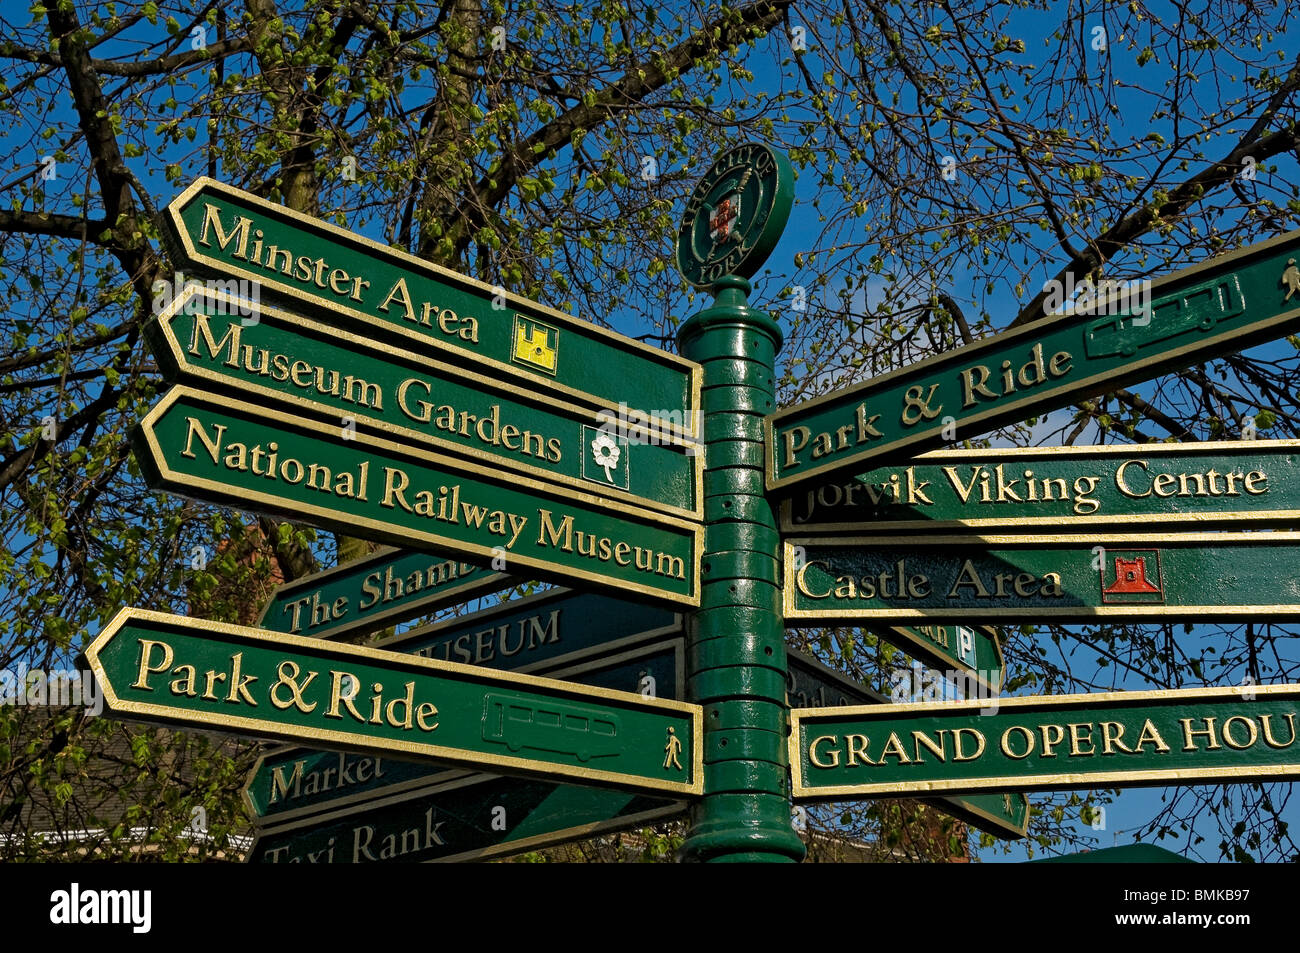 Signpost in York City Centre North Yorkshire England UK United Kingdom GB Great Britain - Stock Image